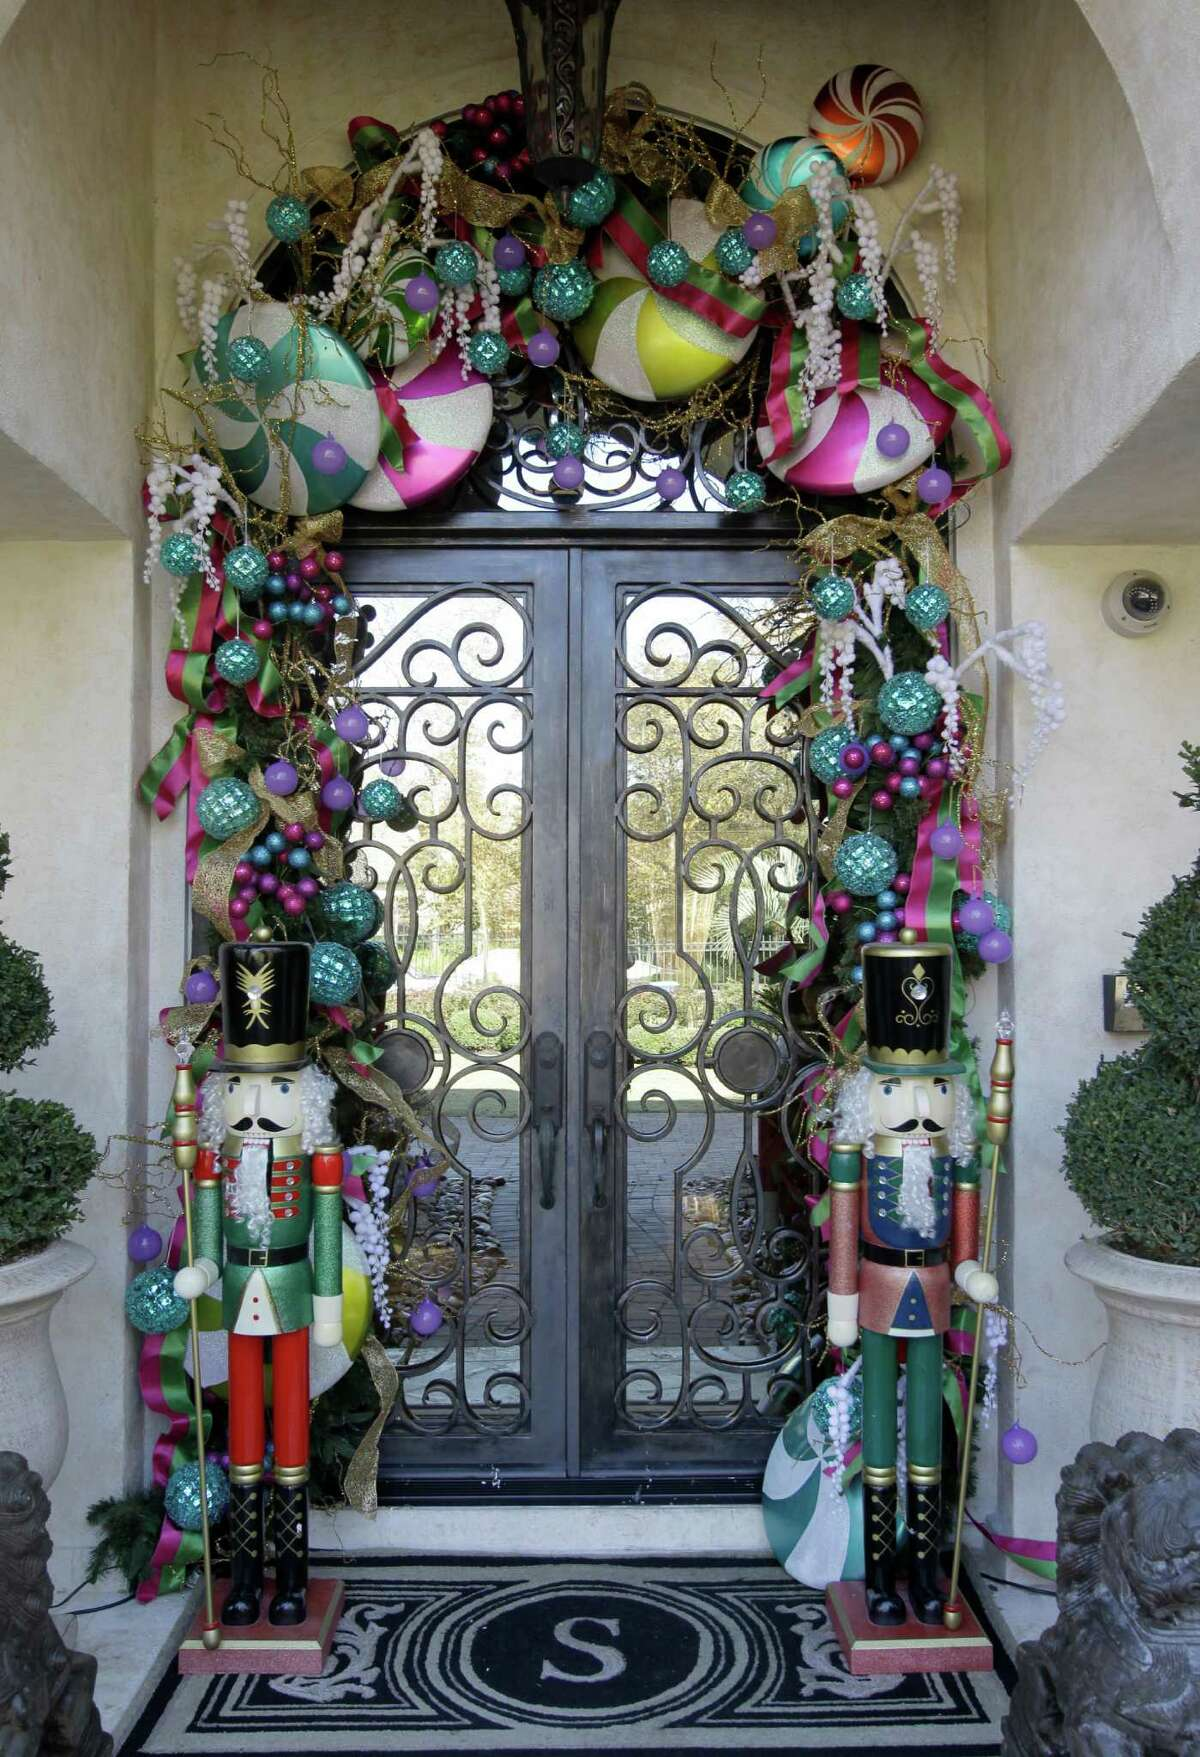 Nutcrackers stand guard at the front door, with big ornaments and oversize candies adding color overhead.